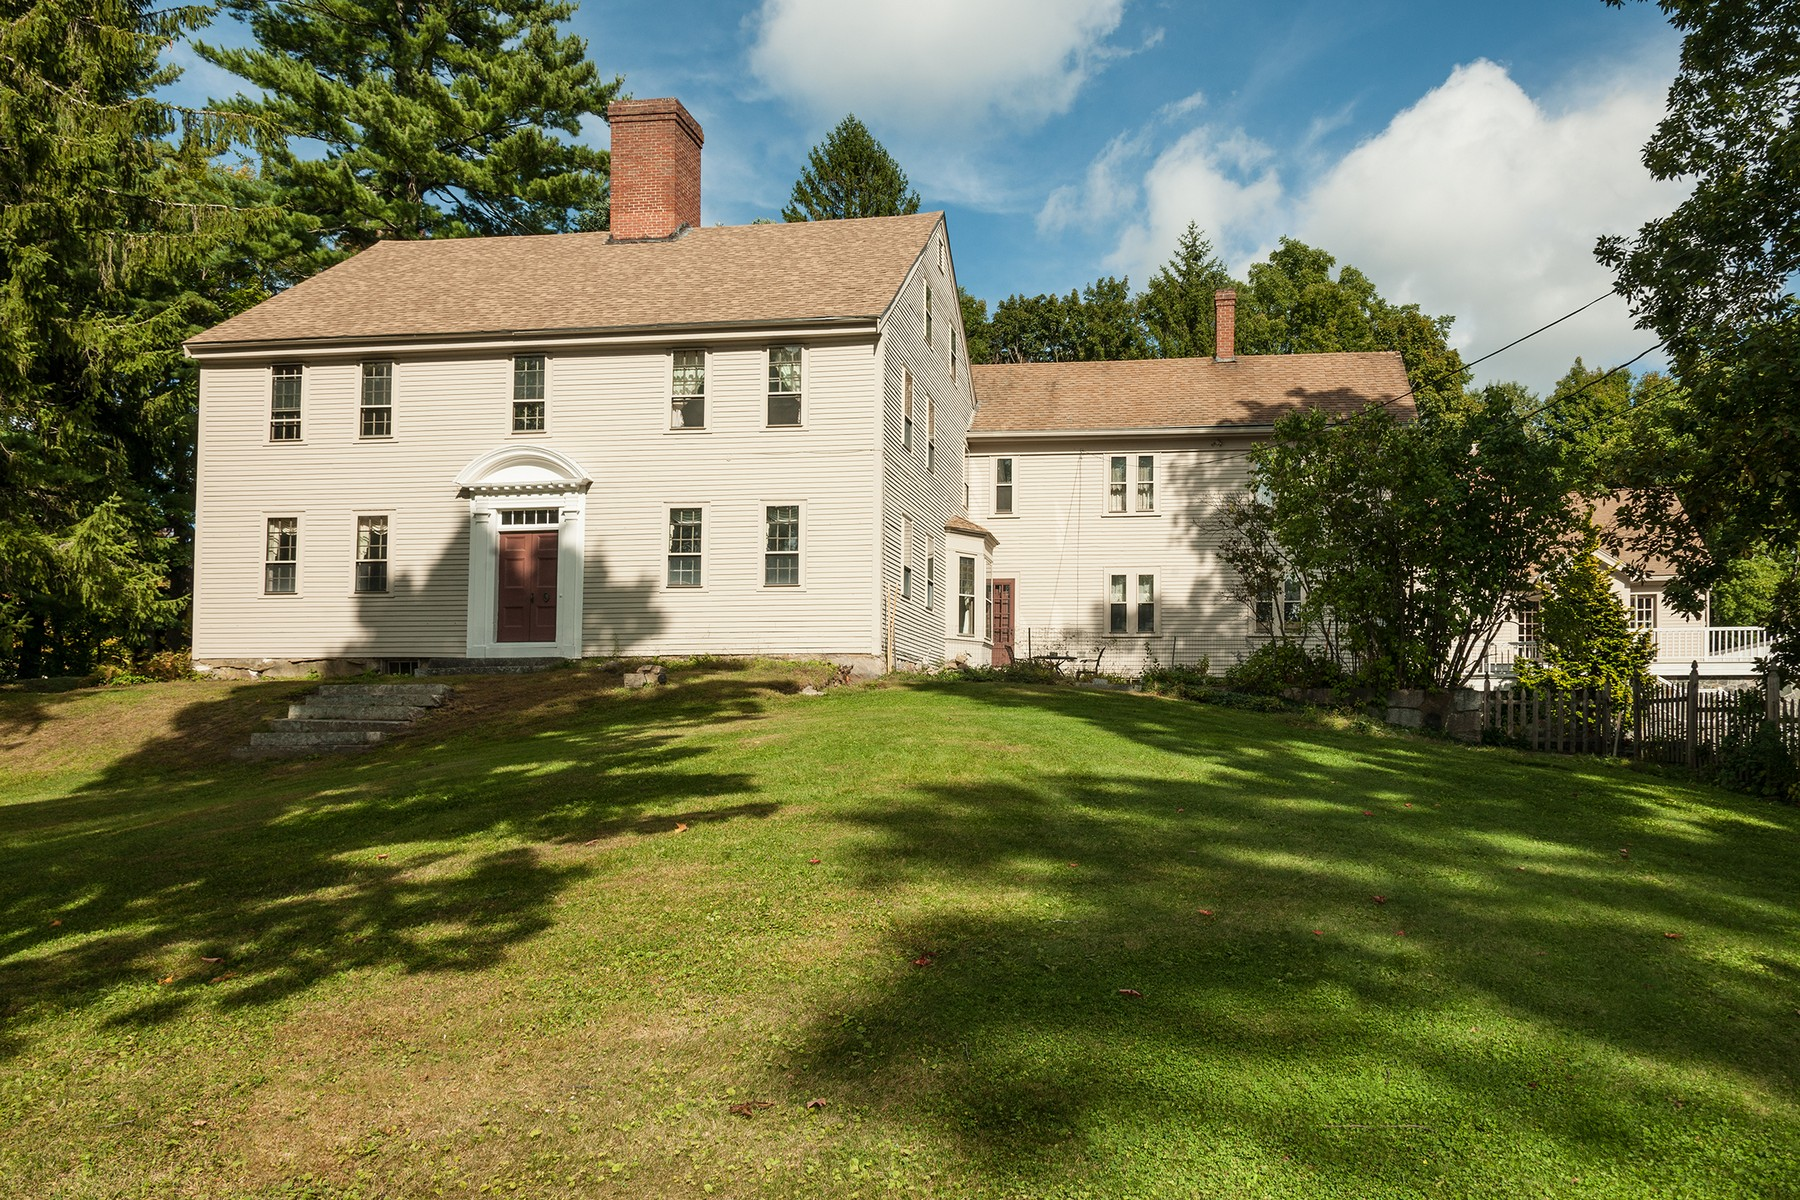 Single Family Home for Sale at General Ichabod Goodwin Estate 1 Oldfields Road South Berwick, Maine, 03908 New England, United States